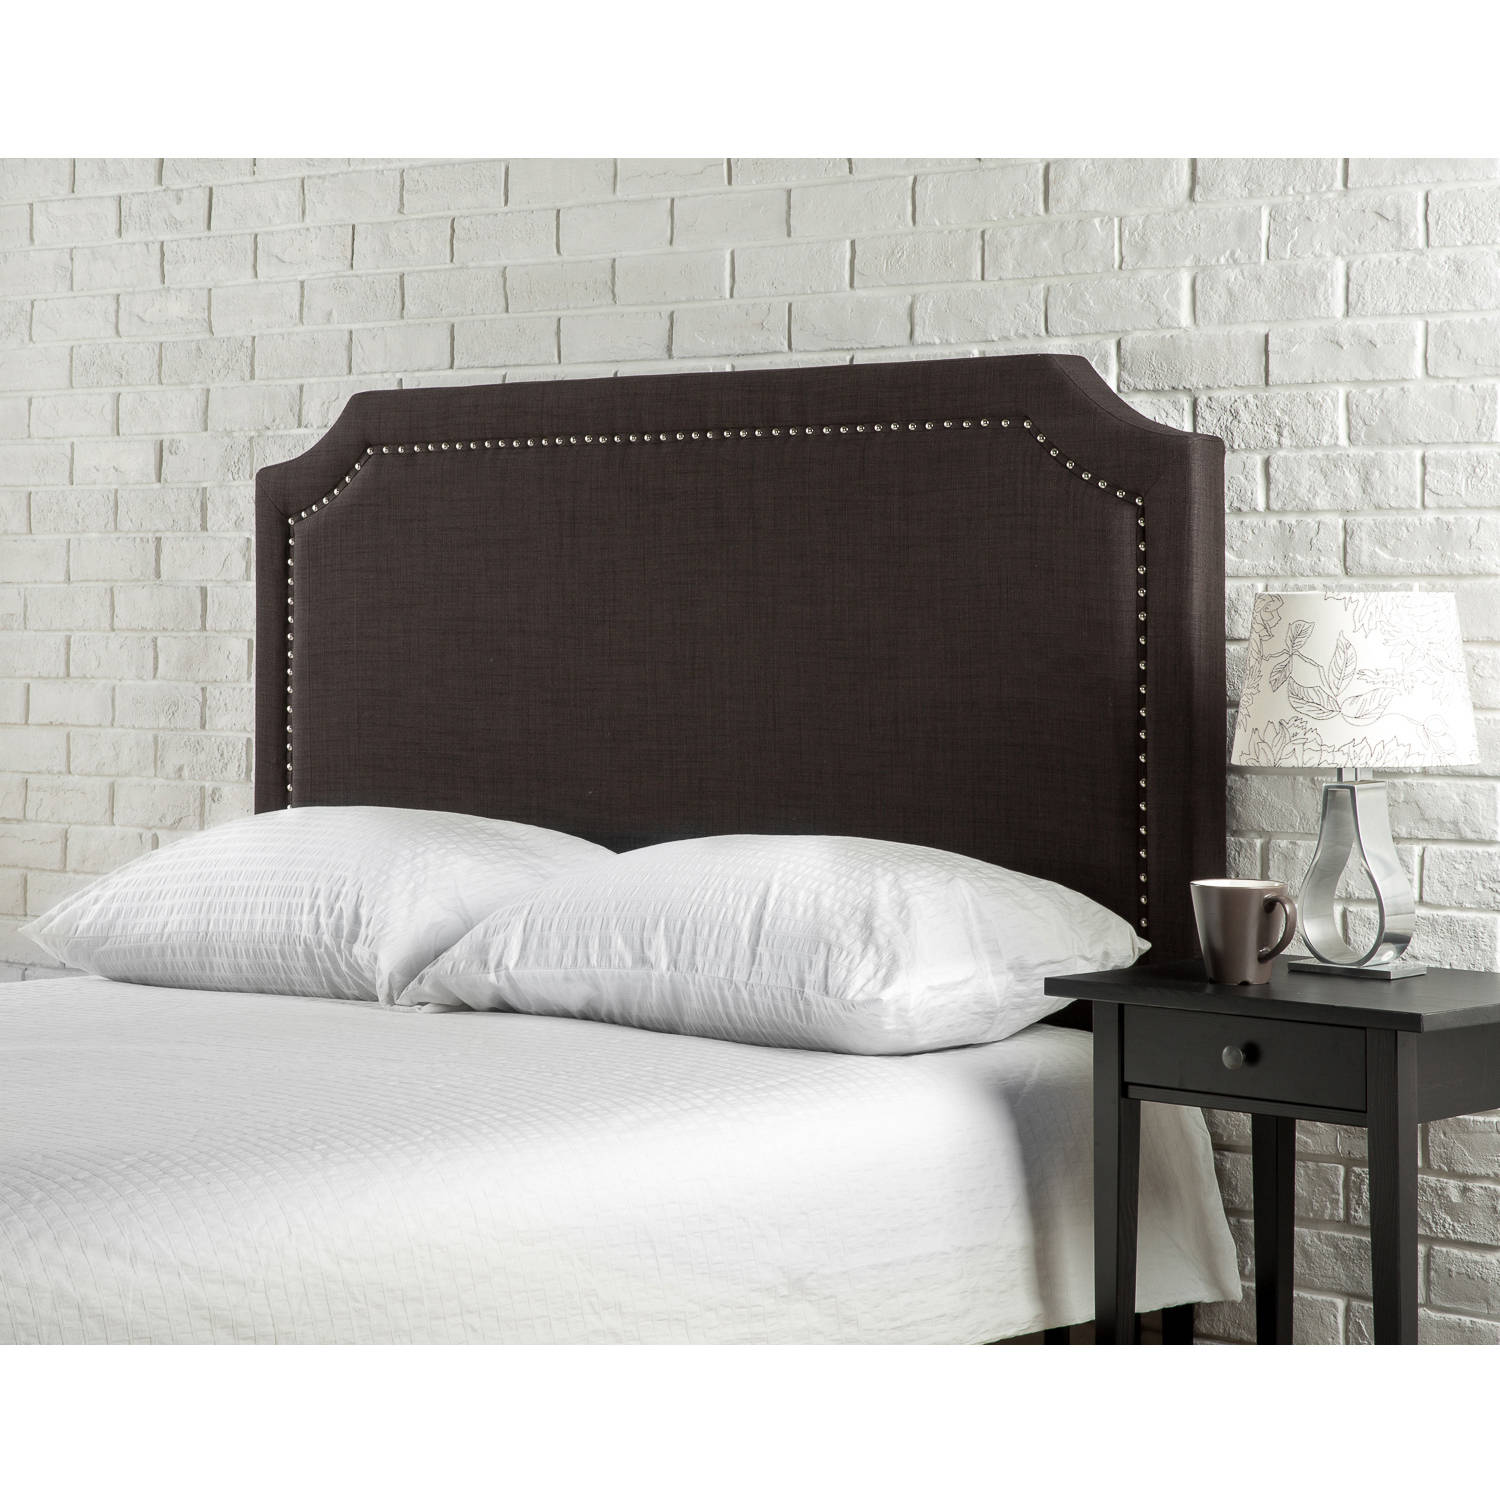 Zinus Upholstered Nailhead Headboard Brown, Full/Queen